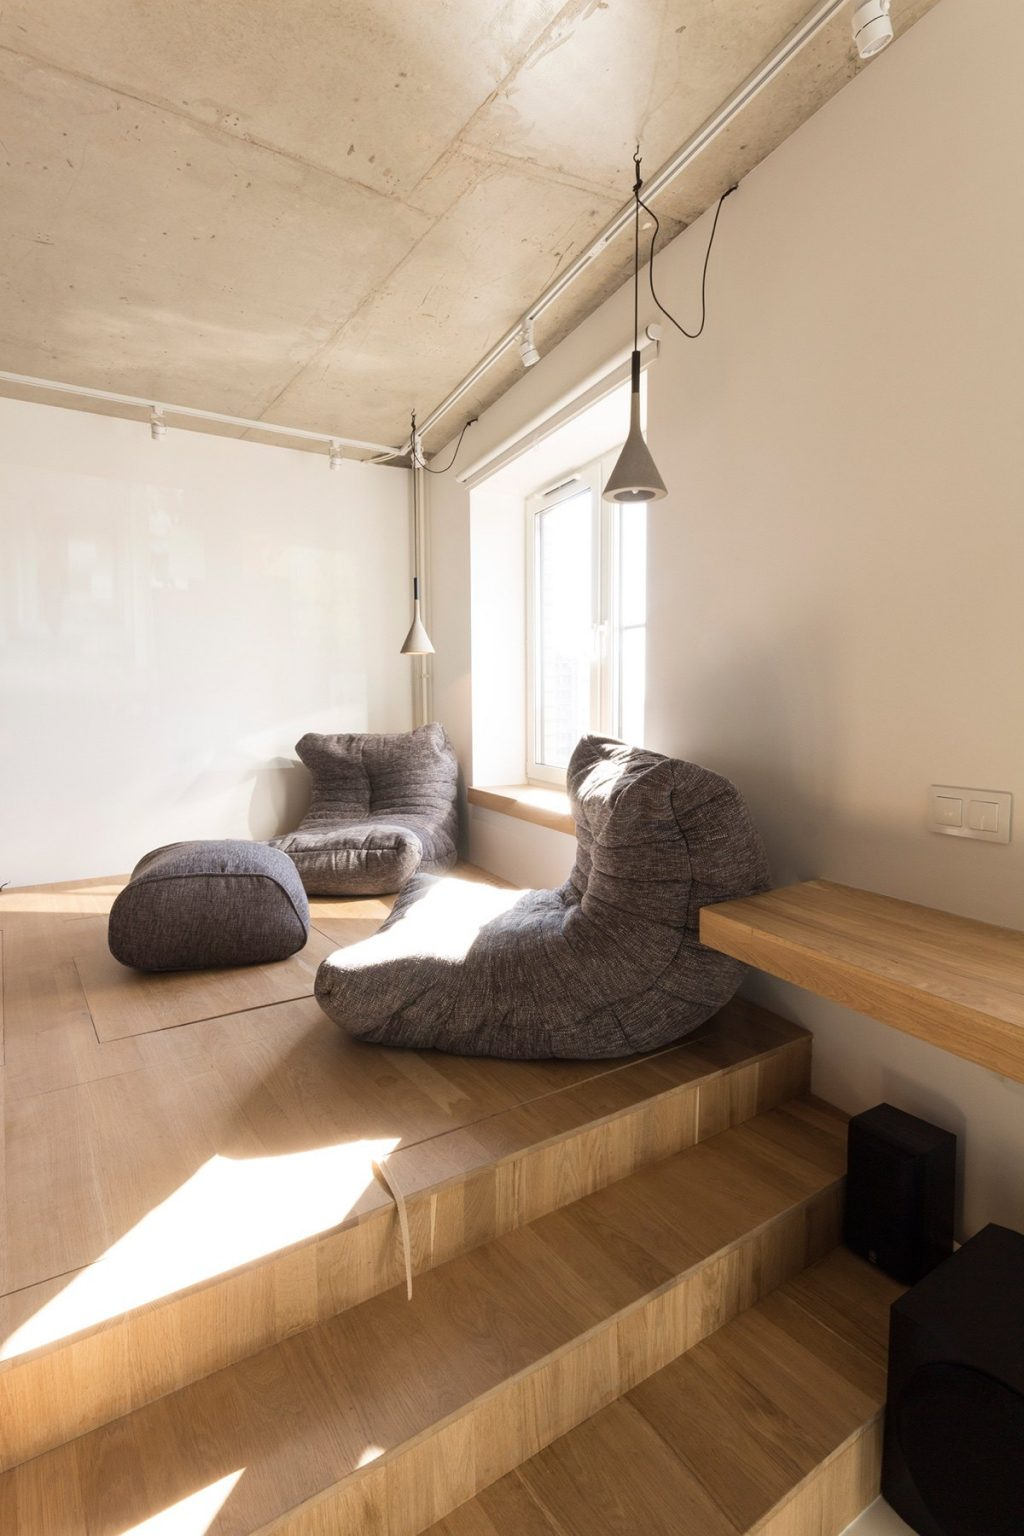 6.Upper-level-relaxation-space-wooden-grey-hanging-light-simple-square-window